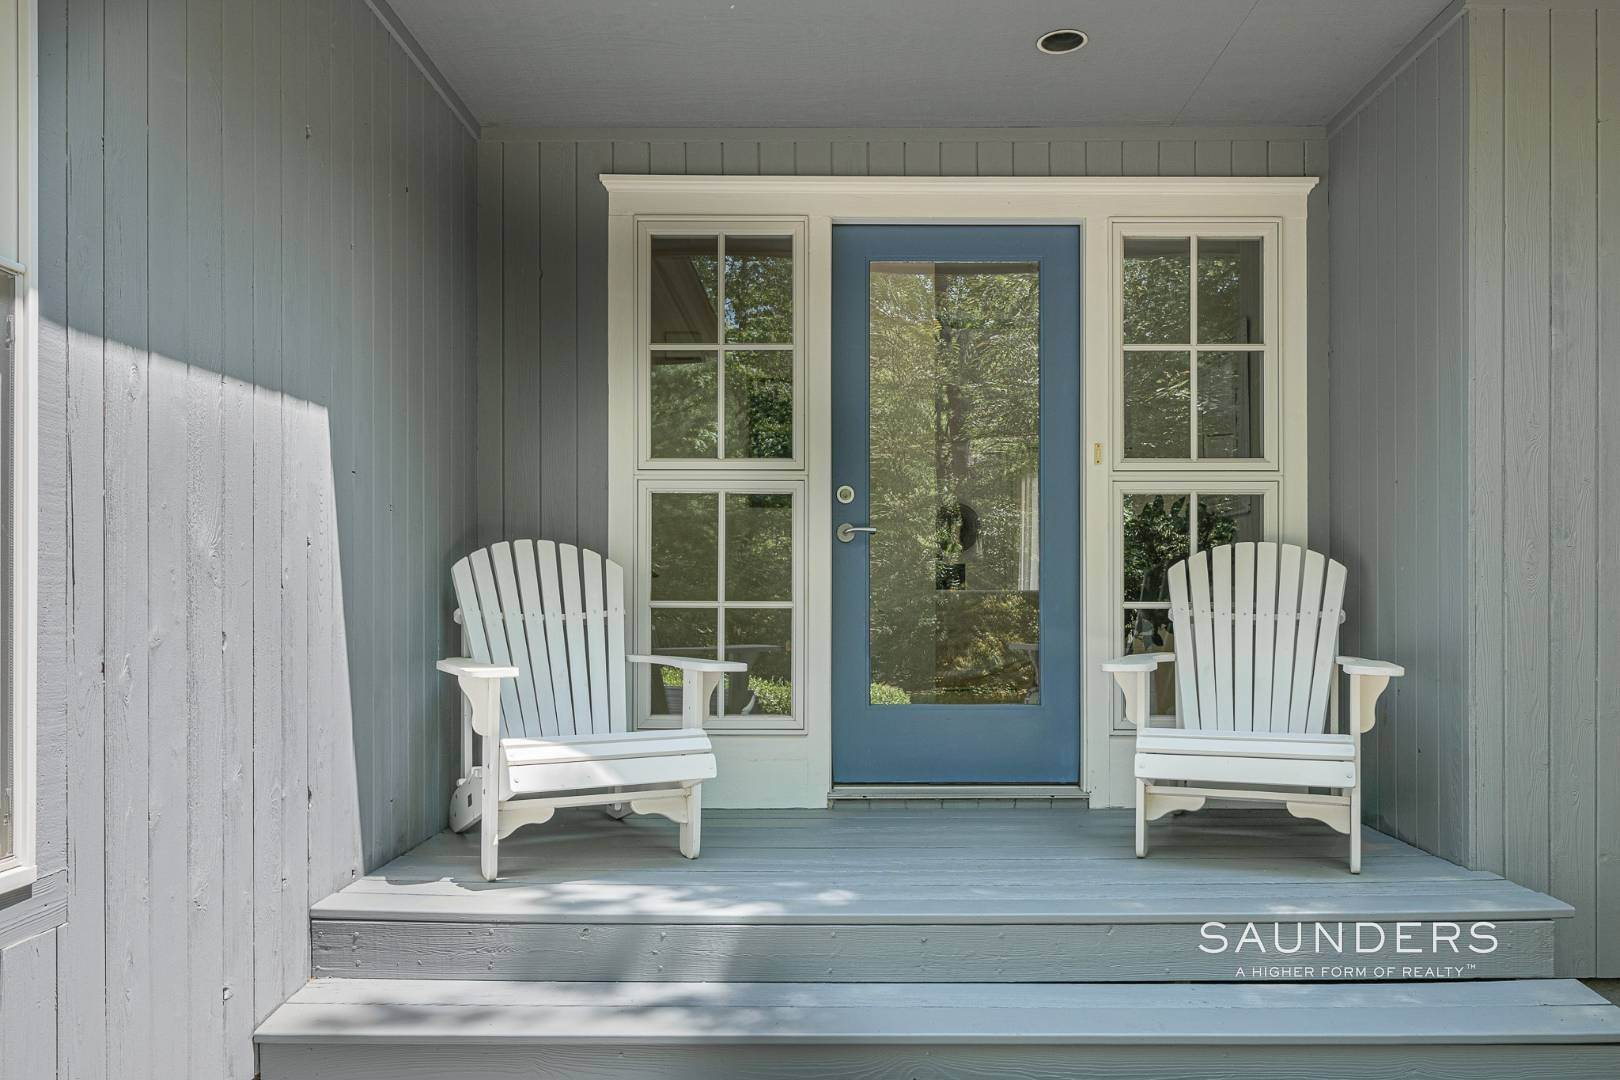 4. Single Family Homes for Sale at Beach House By The Bay 31 Long Woods Lane, East Hampton, East Hampton Town, NY 11937